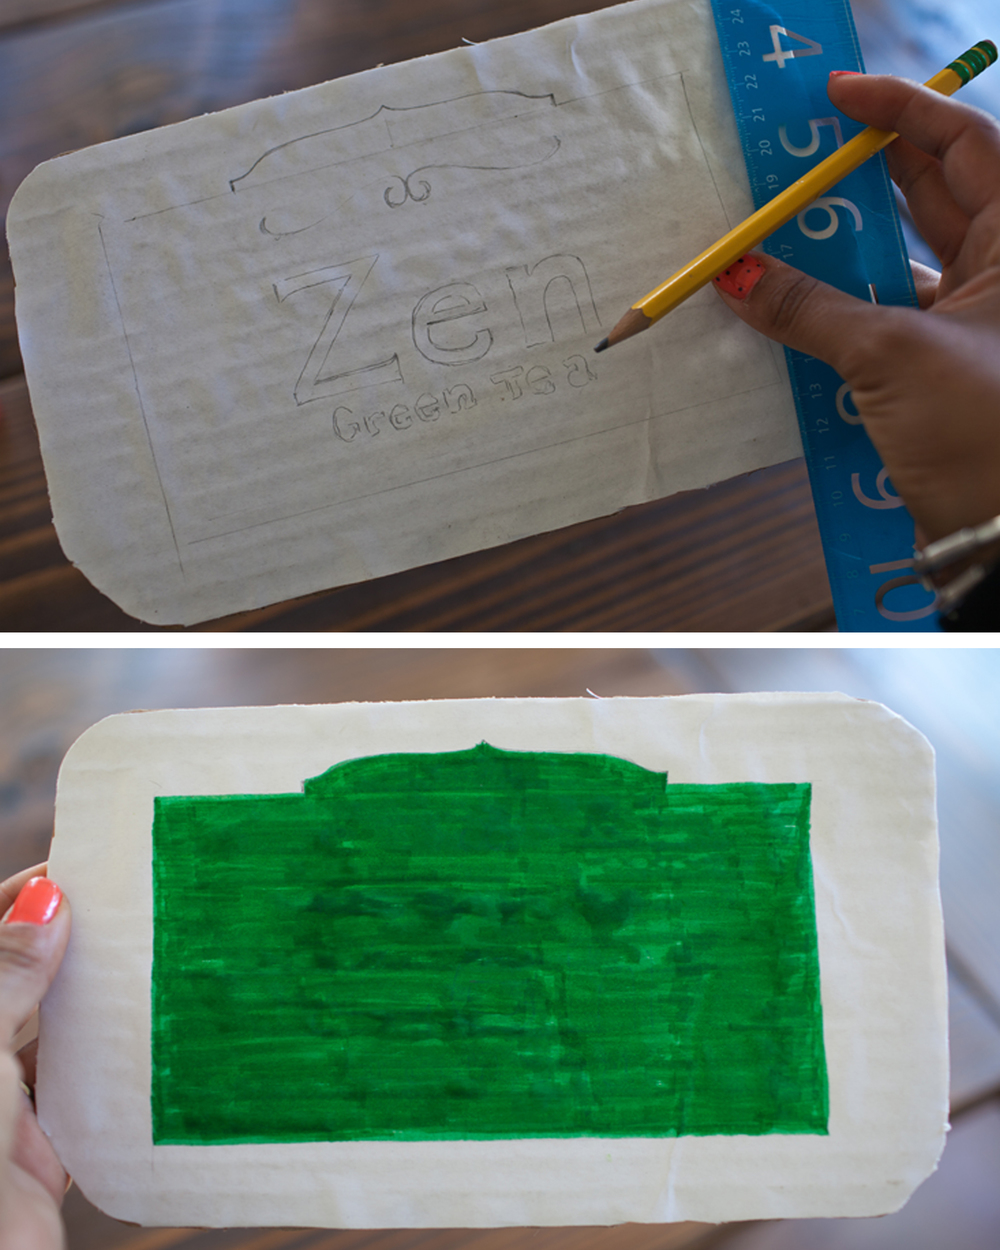 You can create your own tea bag label but I chose to use one of my favorites, Starbucks Zen Green Tea! I used an image from Google to copy the label. When tracing in pencil be sure to draw dark enough to see through your color. After you are done with your sketch, take your green marker and fill in the middle.